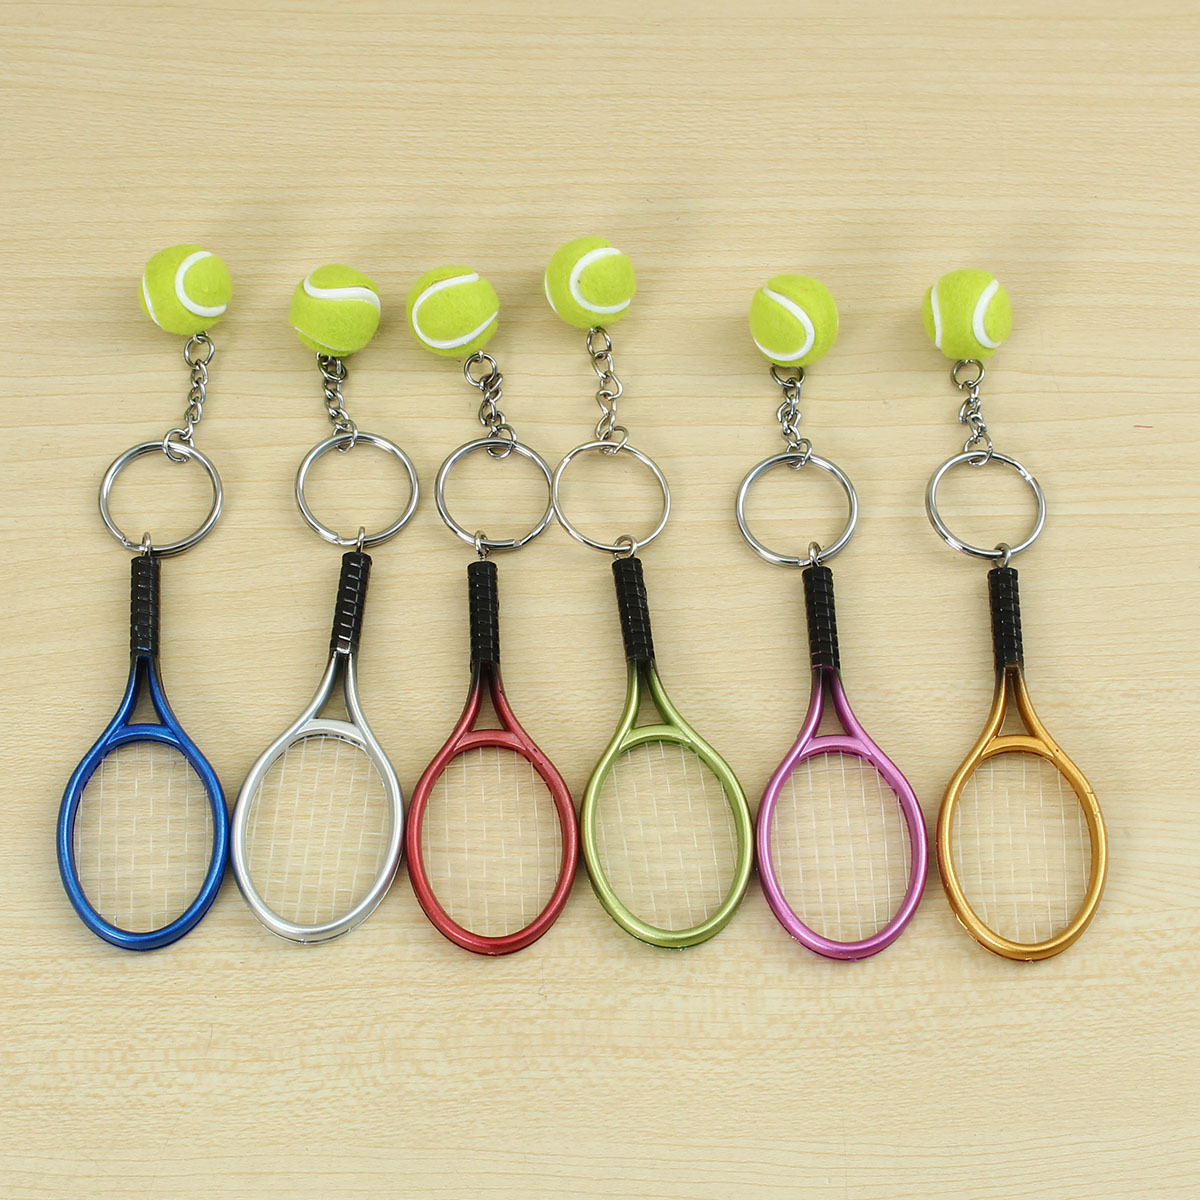 Multi-color Sport Tennis Ball Racket Key Chain Collecta